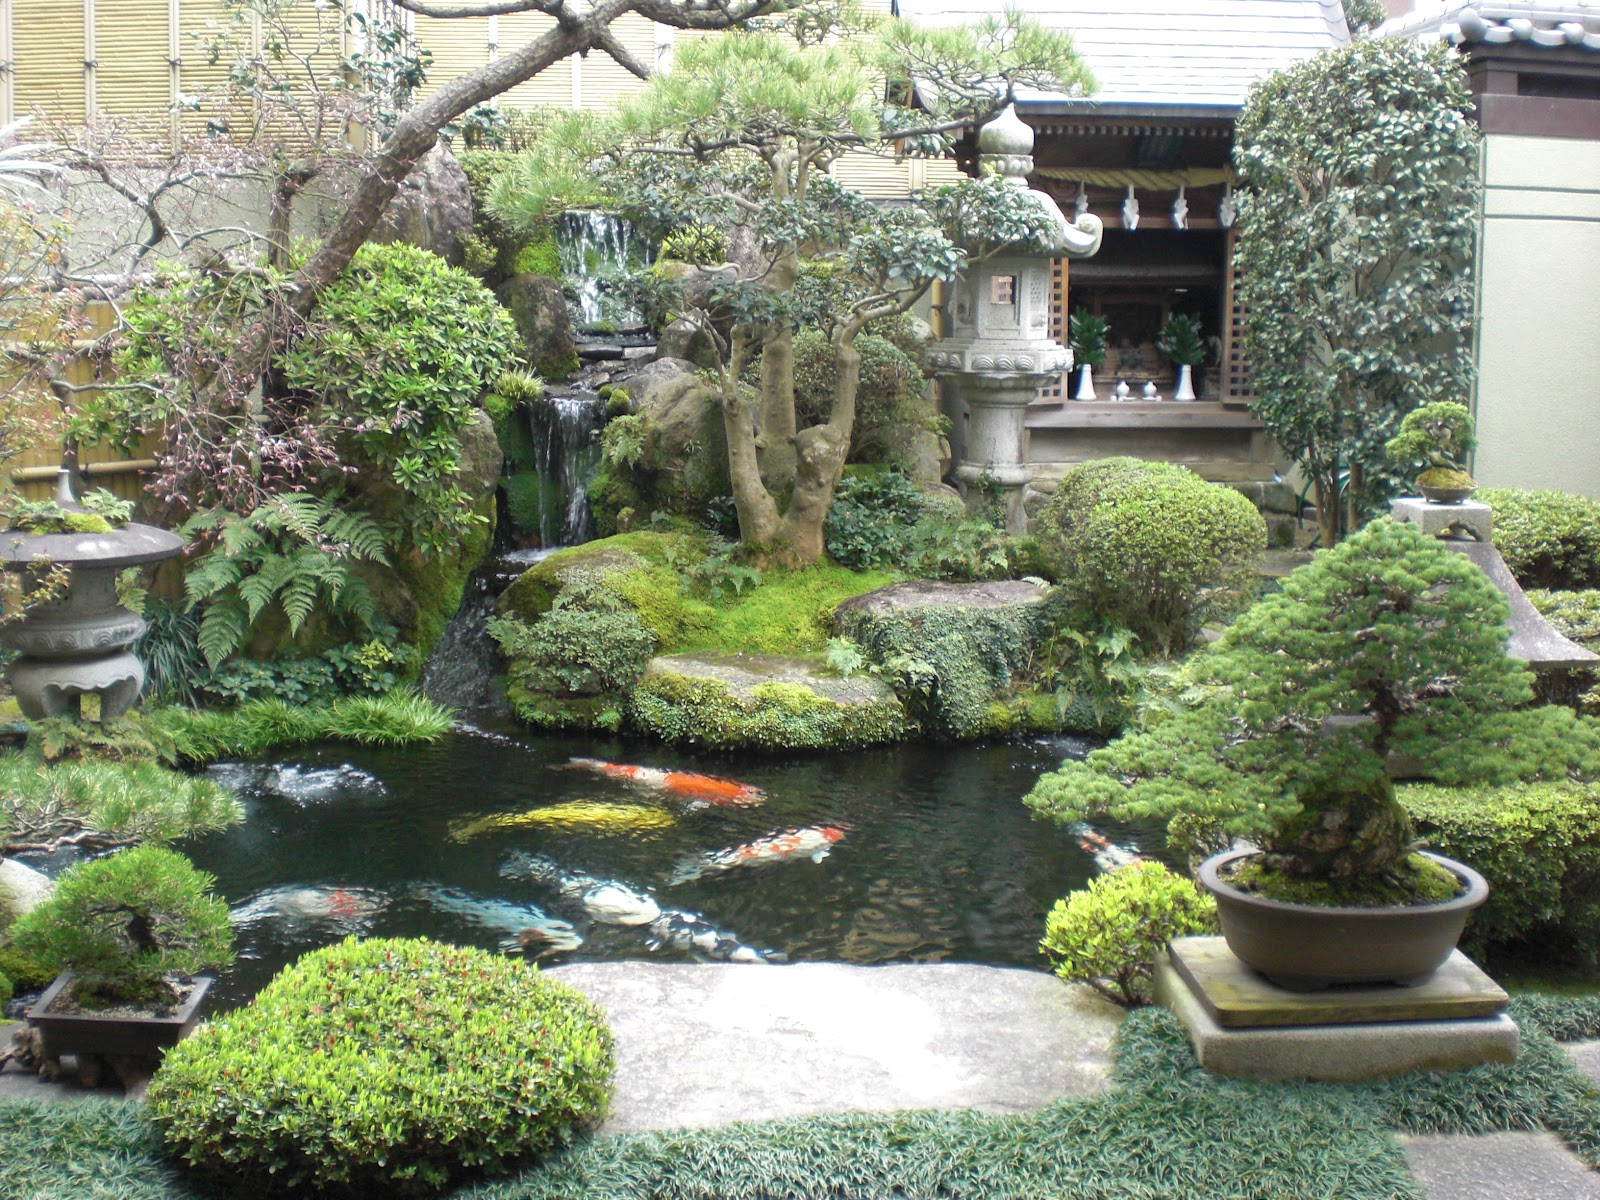 She who seeks may 2012 for Japanese koi pond garden design